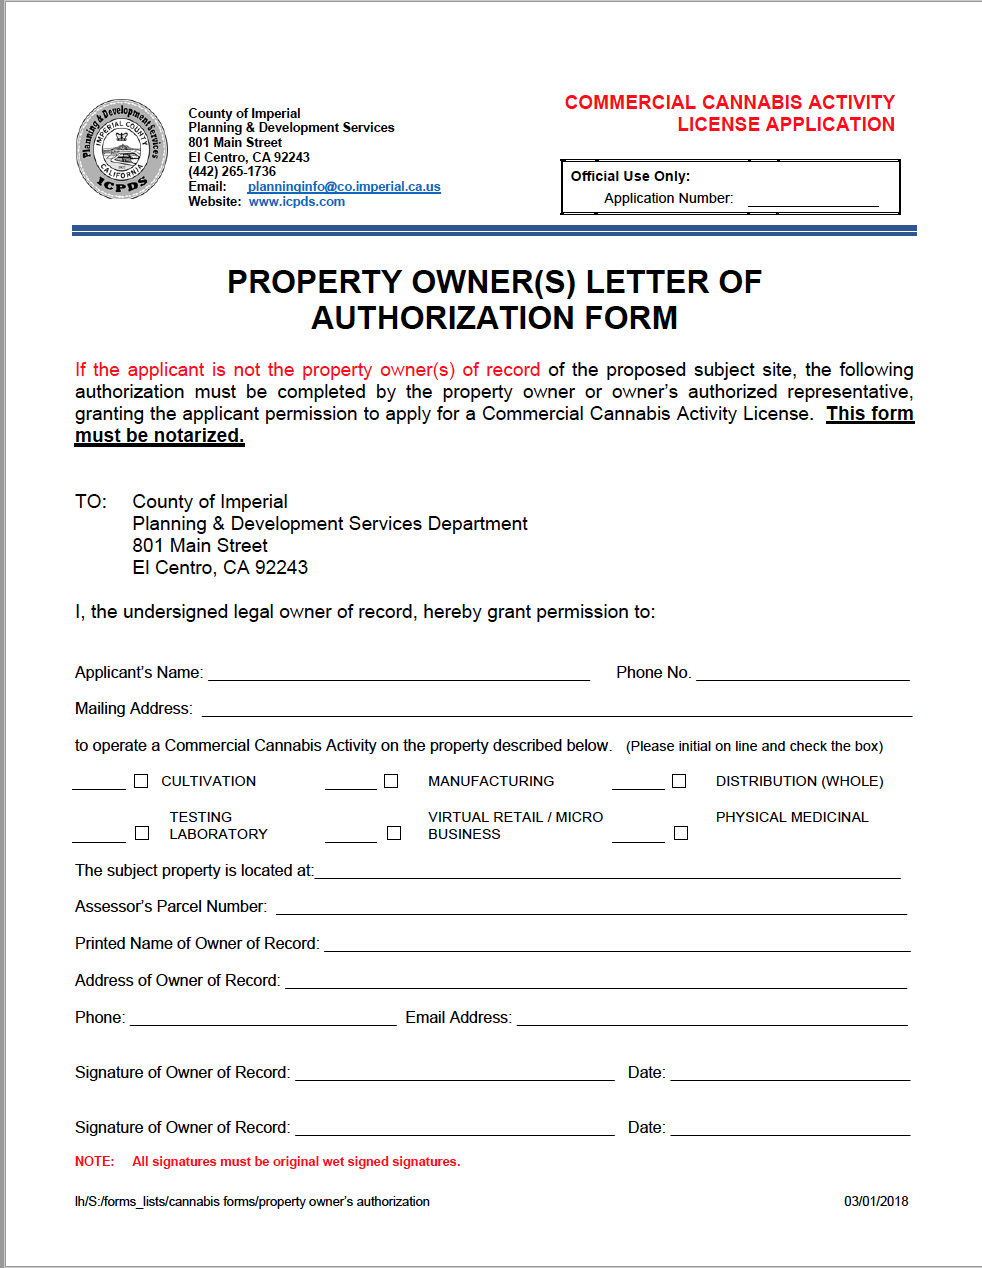 Property Owner Authorization.png